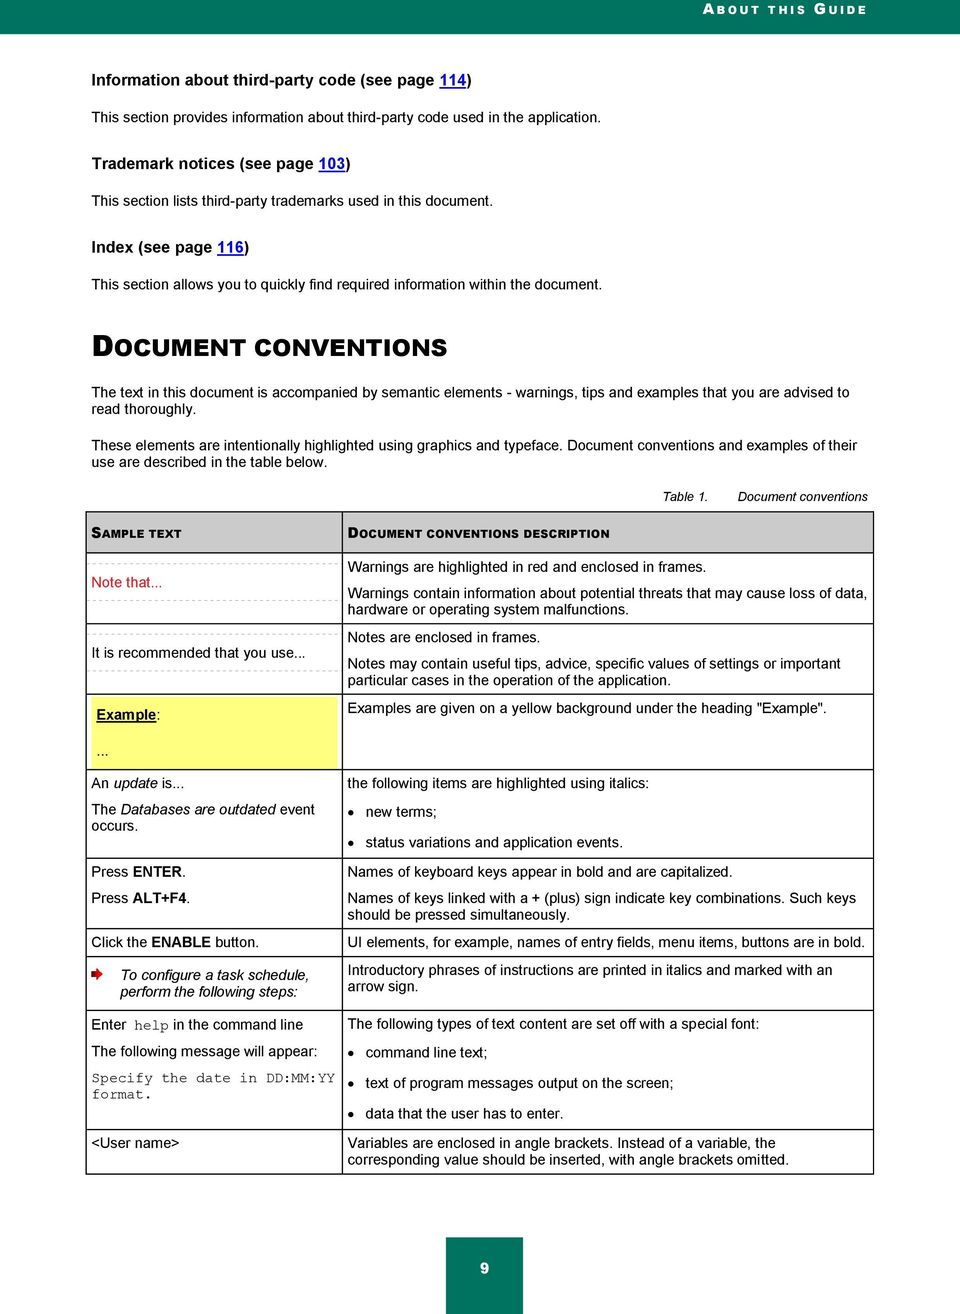 DOCUMENT CONVENTIONS The text in this document is accompanied by semantic elements - warnings, tips and examples that you are advised to read thoroughly.